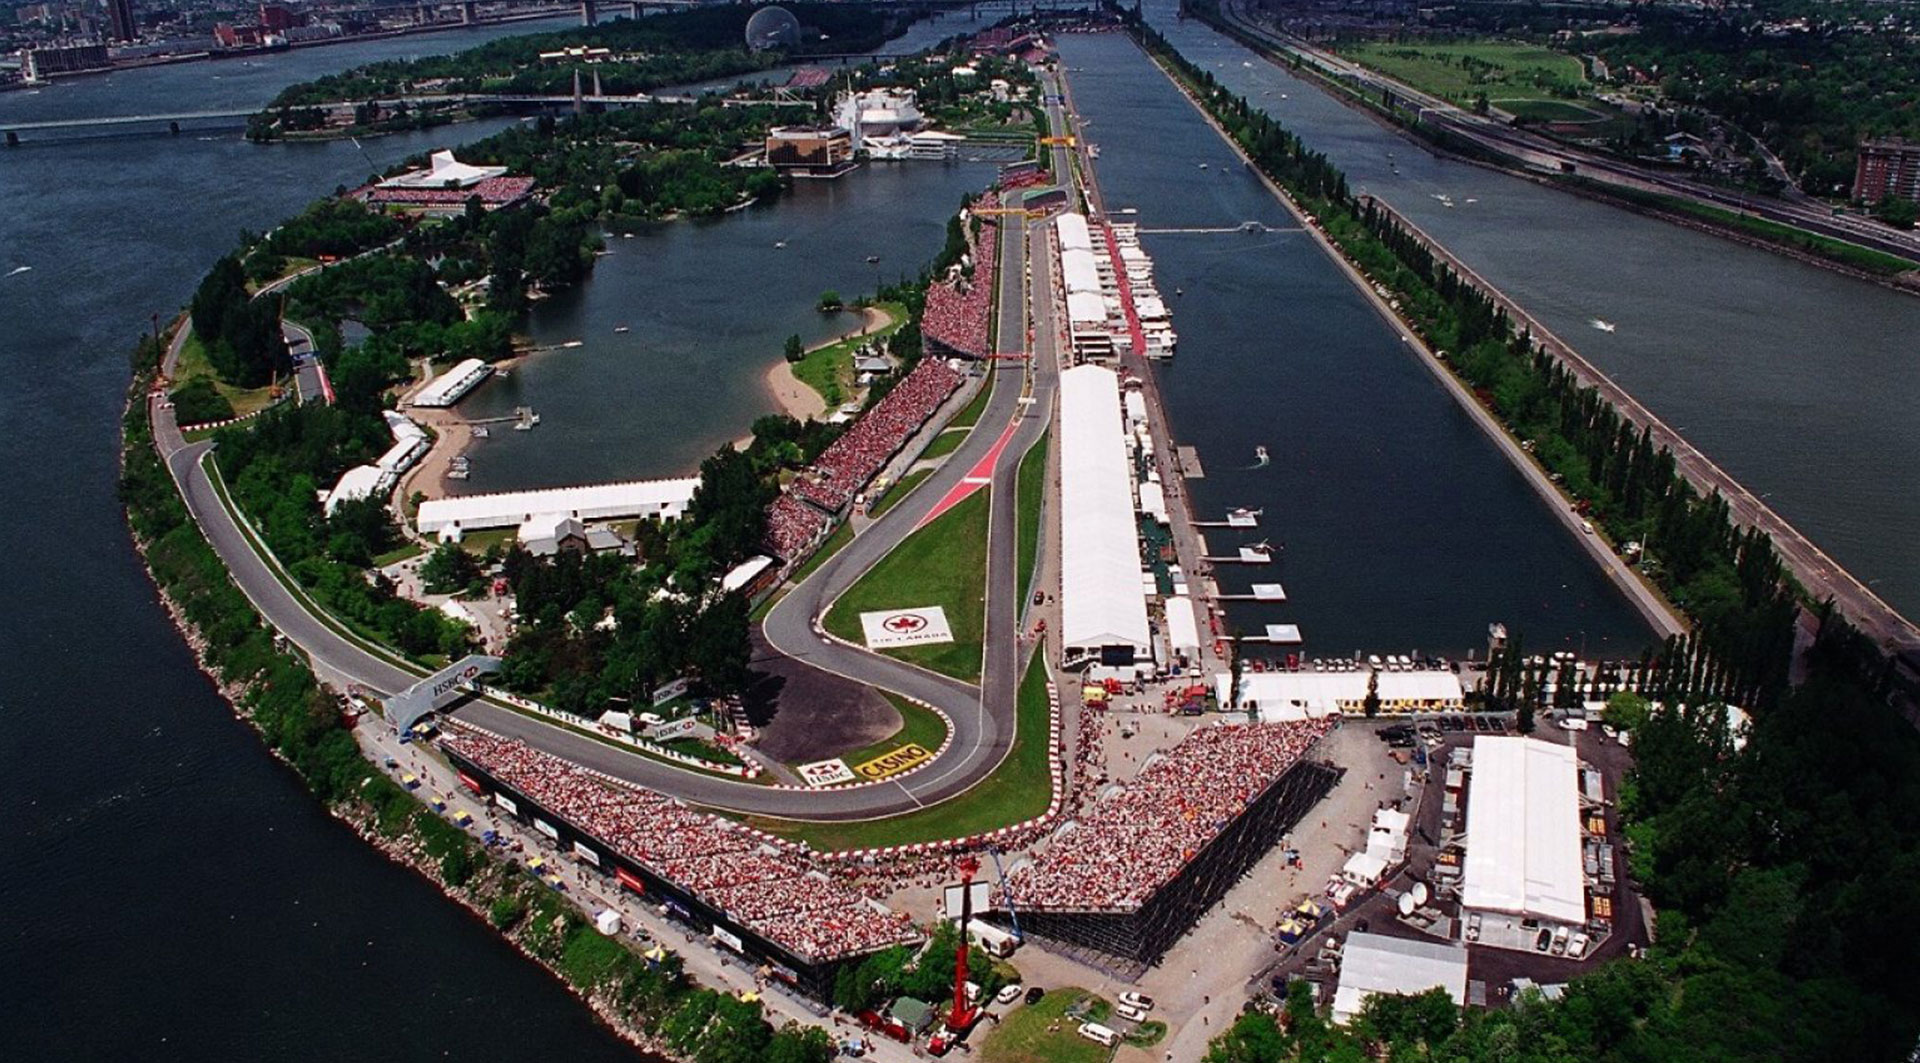 F1 Canadian Grand Prix Hospitality Packages